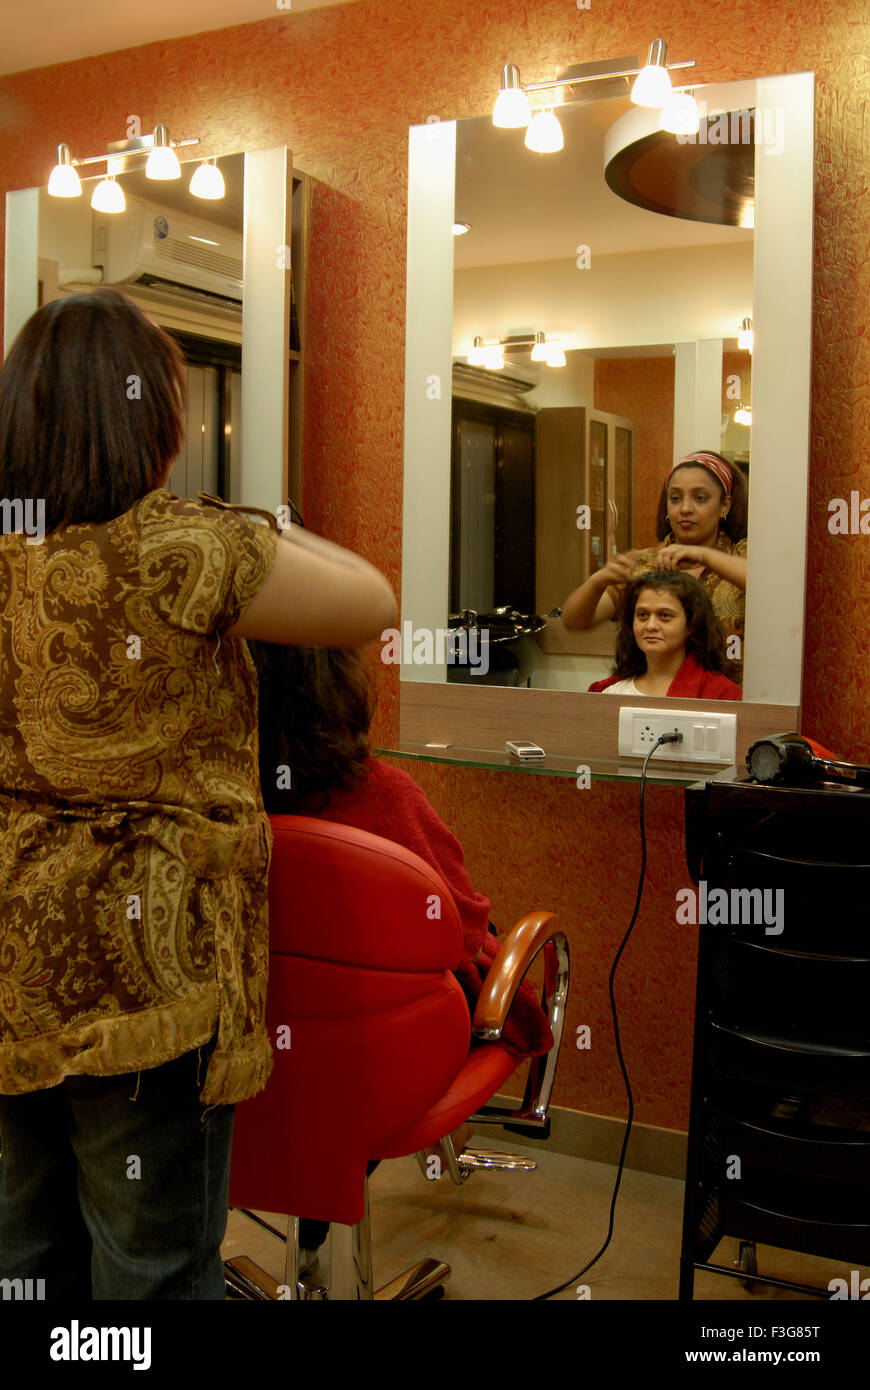 Hair Styling And Color Highlighting Treatment In Beauty Parlour At Stock Photo Alamy